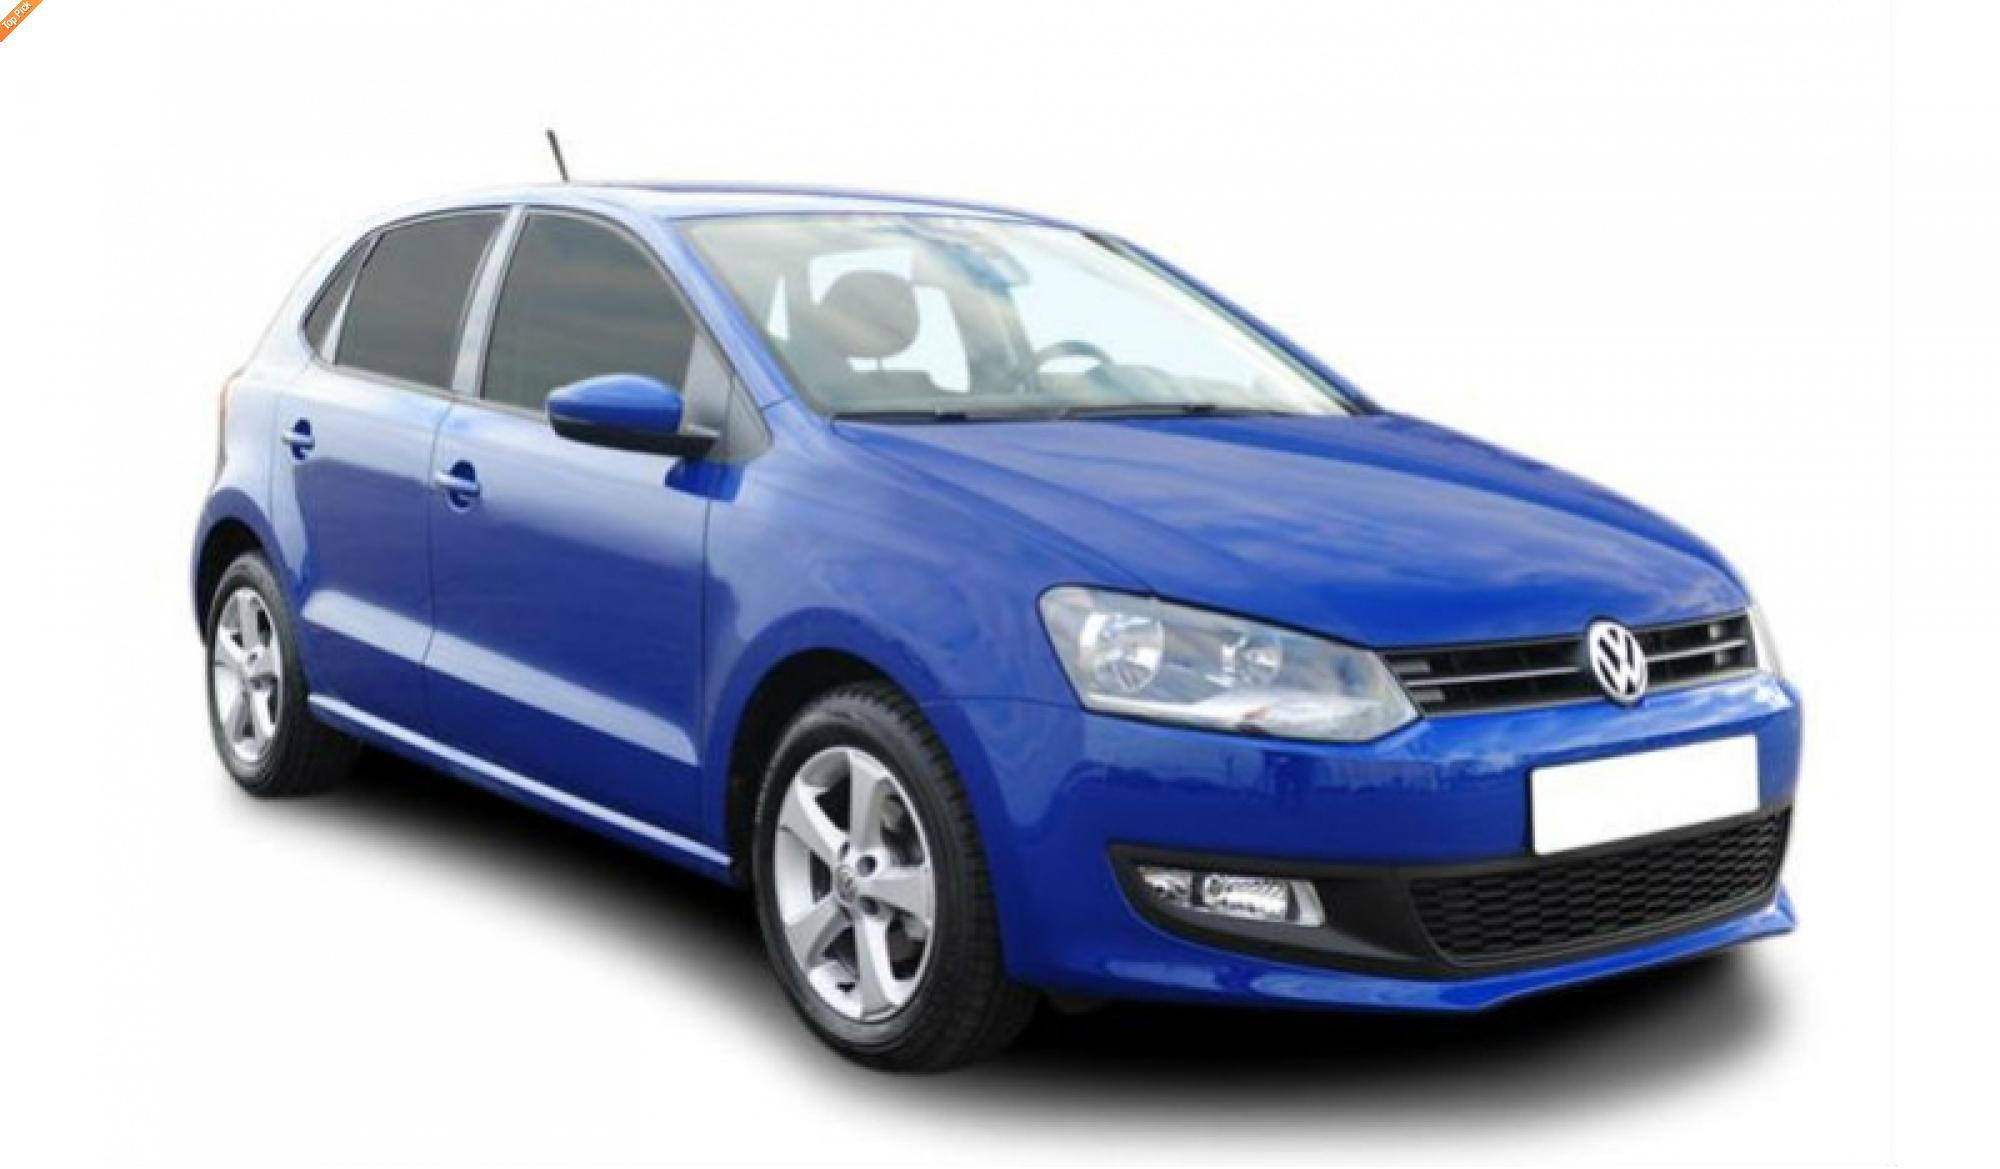 Volkswagen Polo 1.2TSFI Beats 5dr No Deposit Personal Leasing